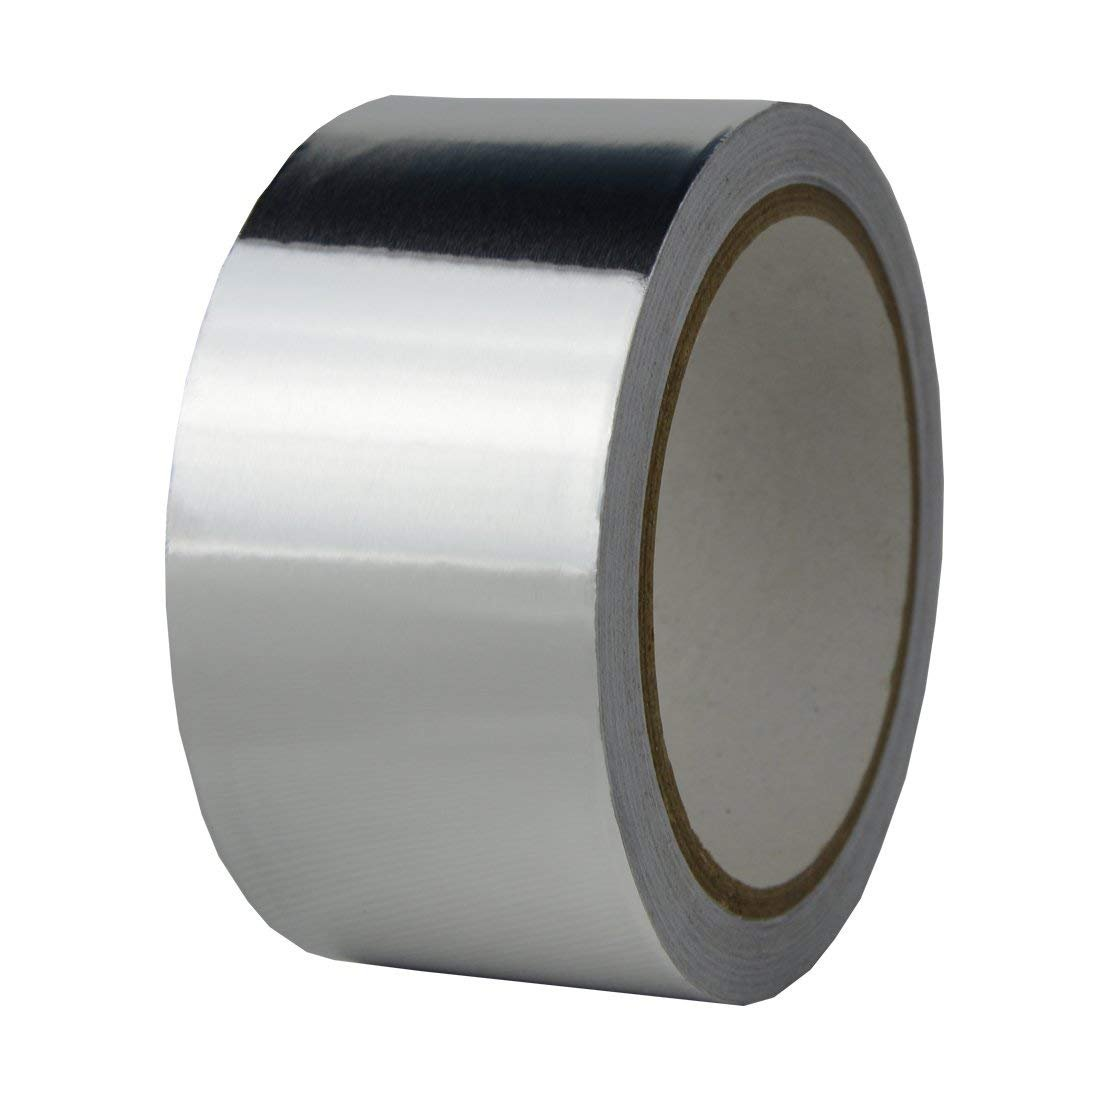 AIYUNNI Multi-Purpose Aluminum Foil Tape, Silver, 2-Inch x 55 Yards (50mm x 50m),best for HVAC,High Temp Heat-Resistant Foiled Tape Rolls for HVAC Repair, Metal Repair Ducts, Insulation, Dryers, Jewel